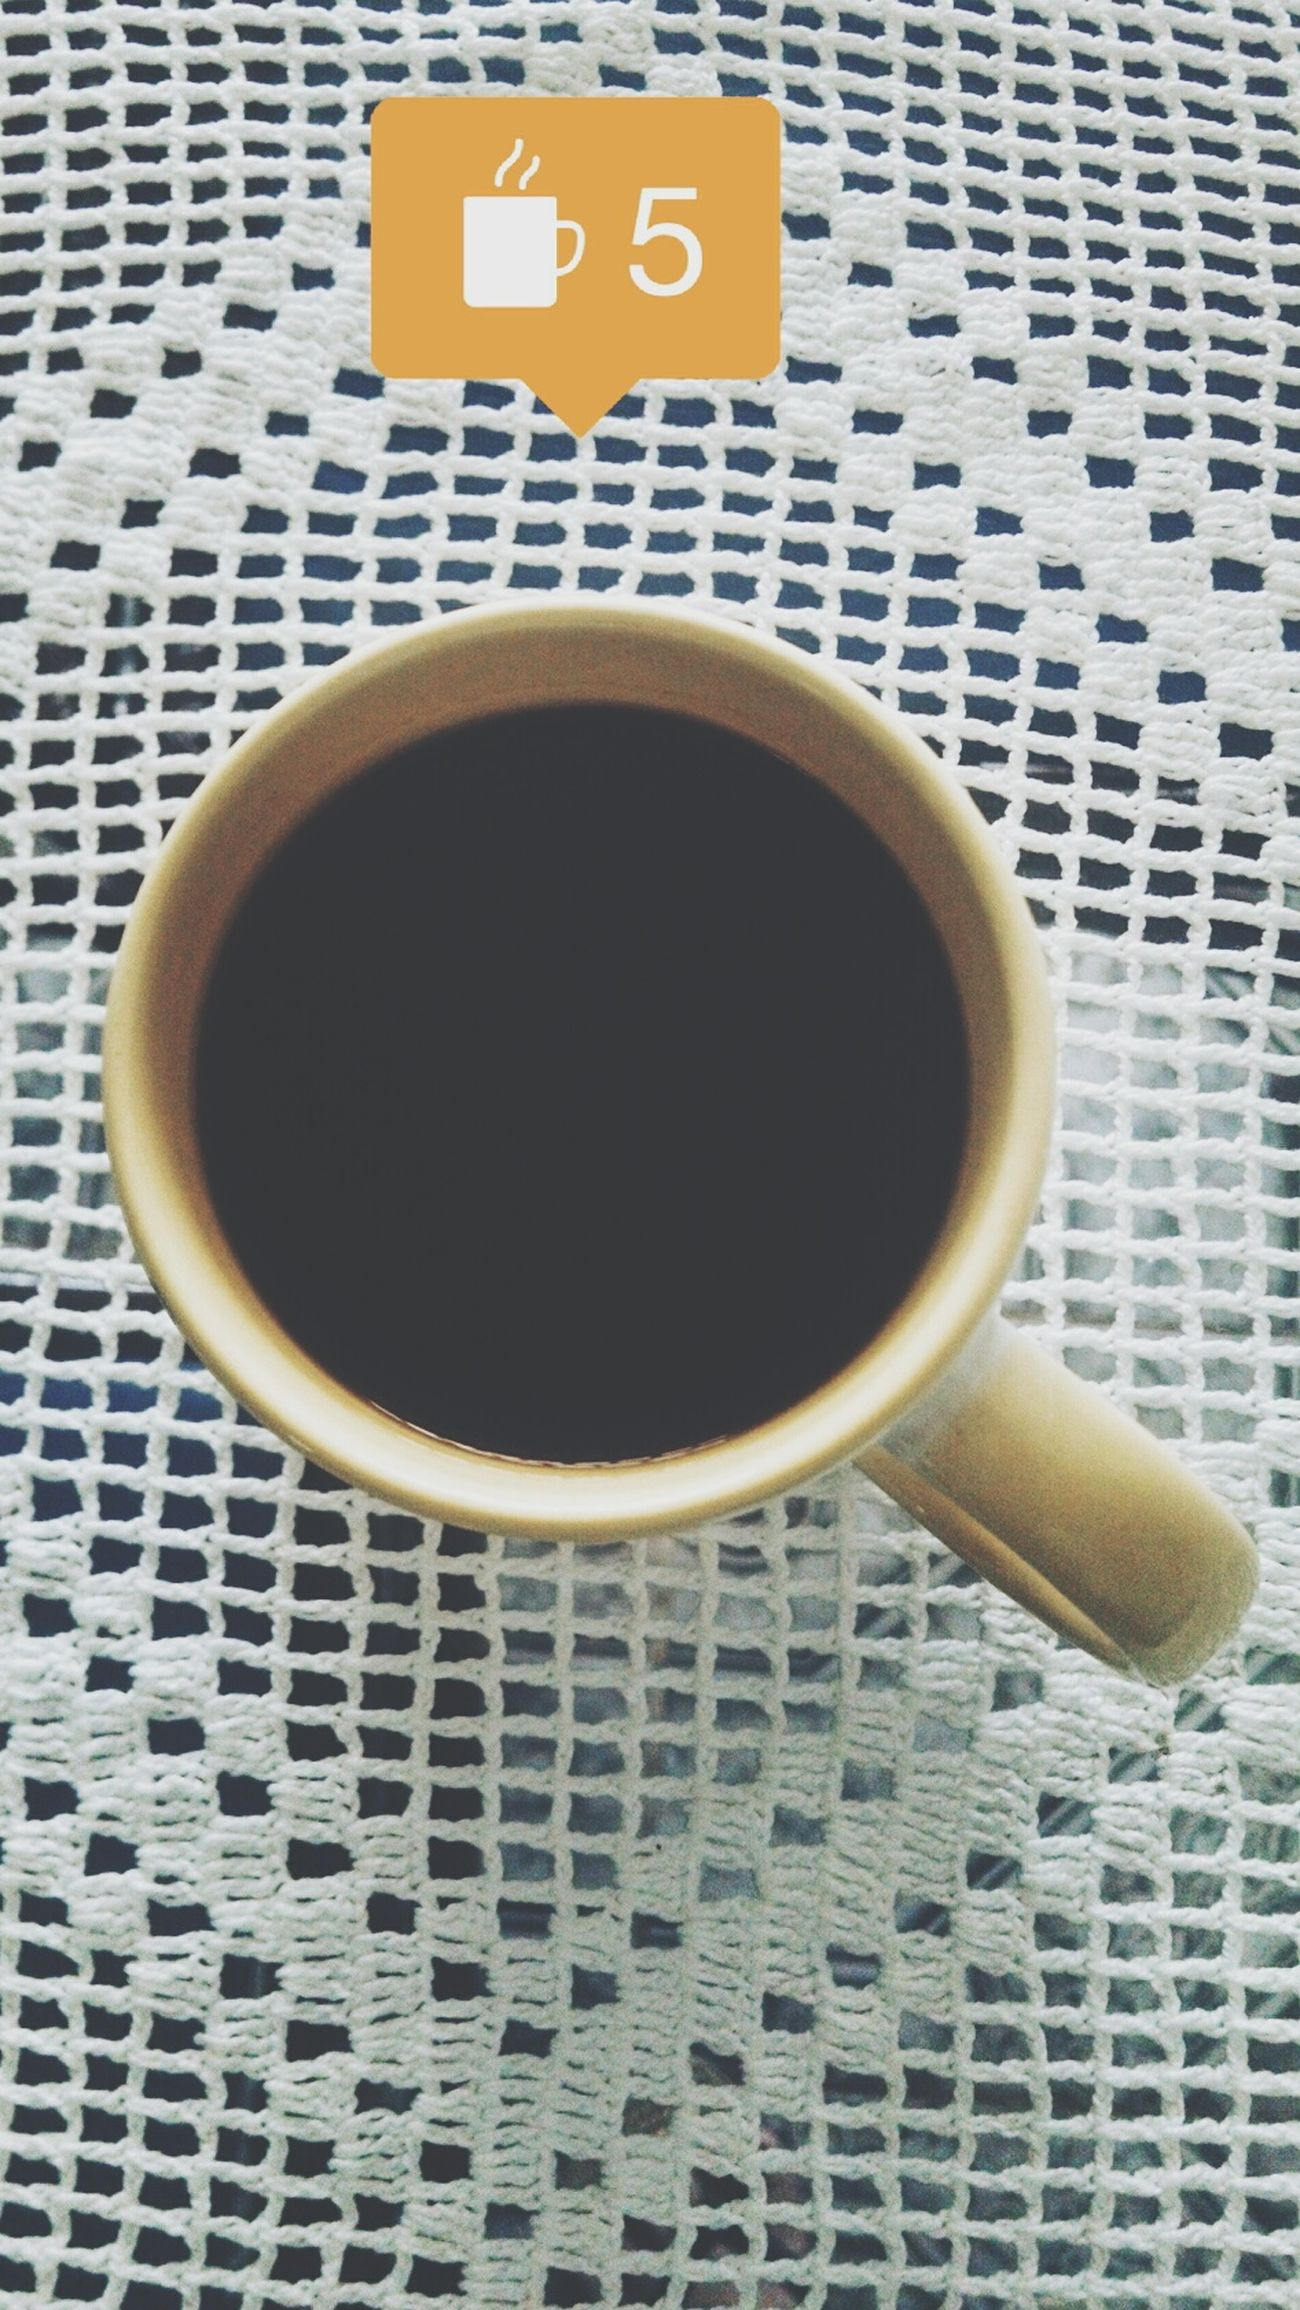 Coffee GiddyLizer Table Hot Calm Likeforlike Food Drink Simpson Xicara First Eyeem Photo